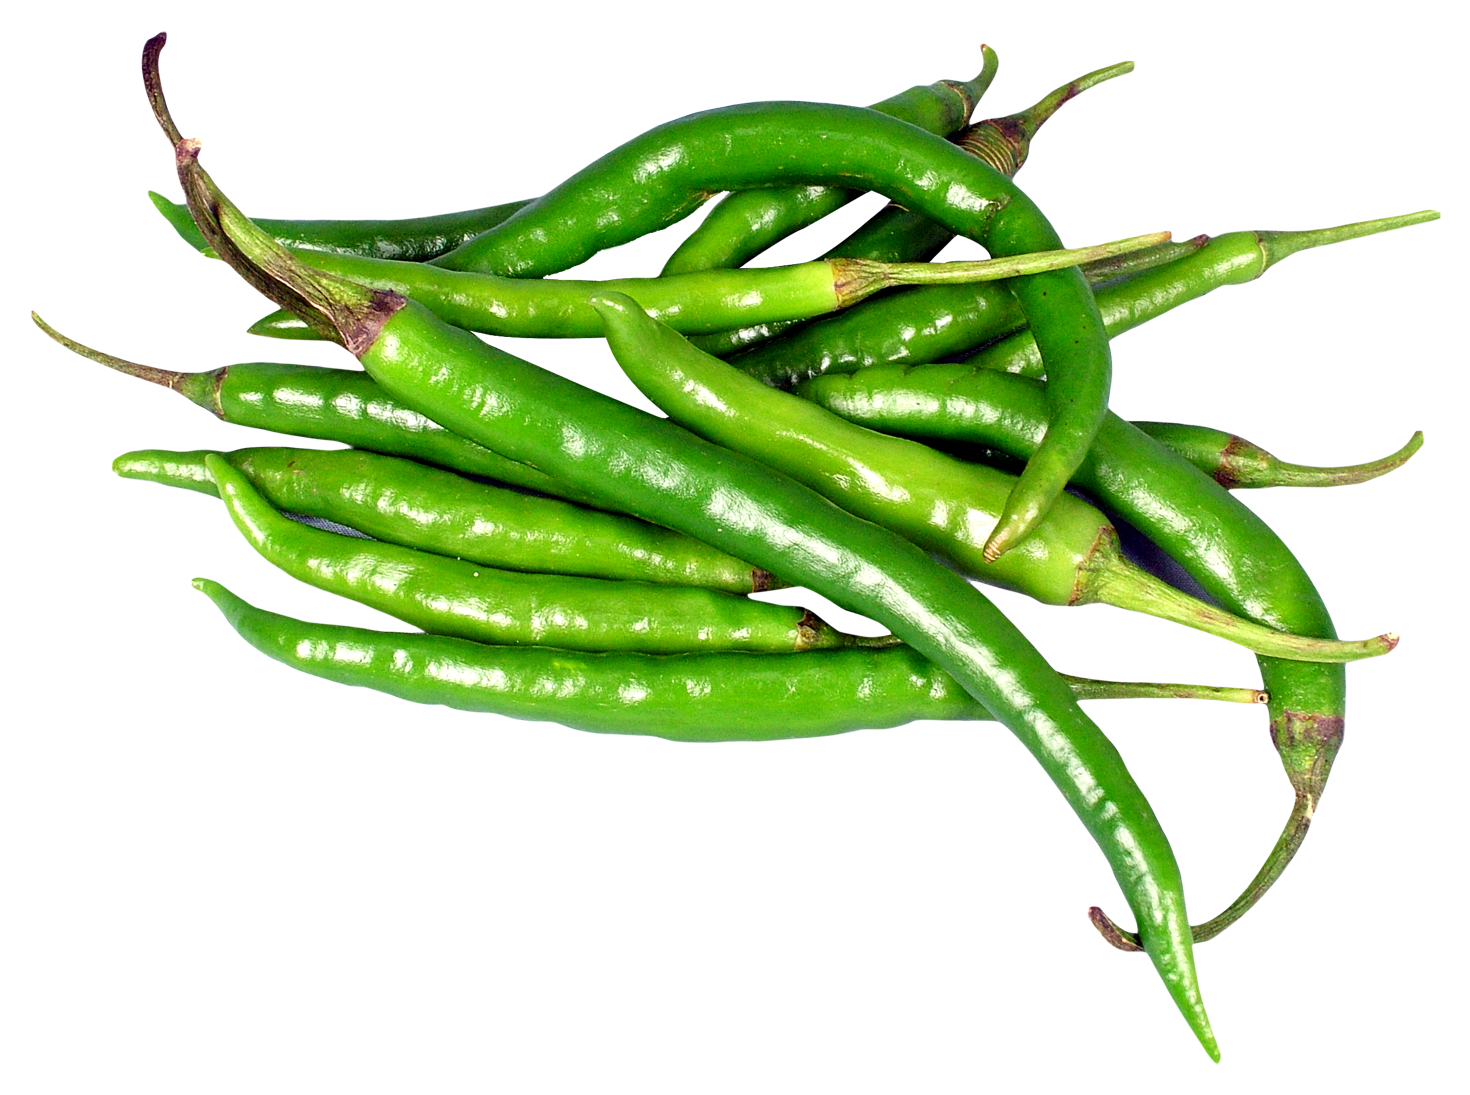 Green chili peppers png. Jalapeno clipart mirchi